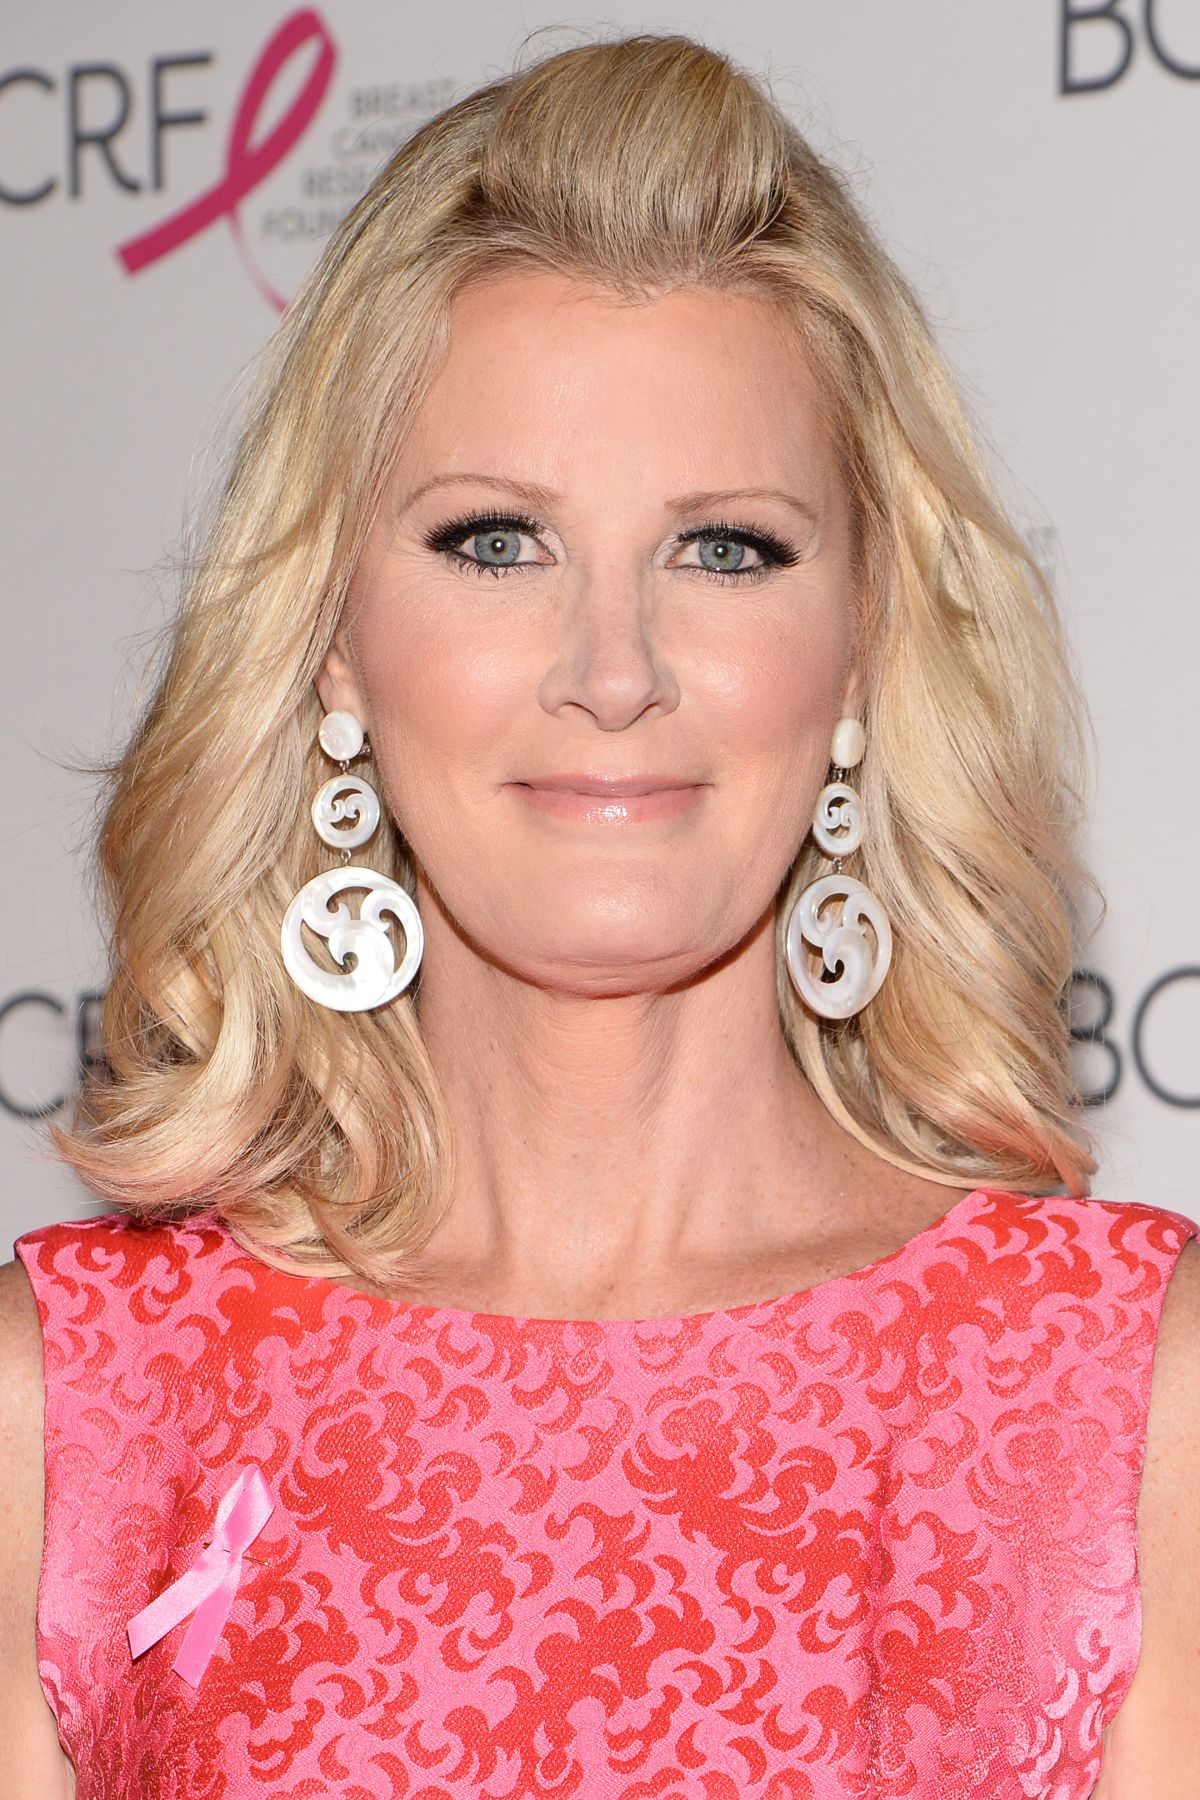 Sandra Lee Cancer Images - Reverse Search